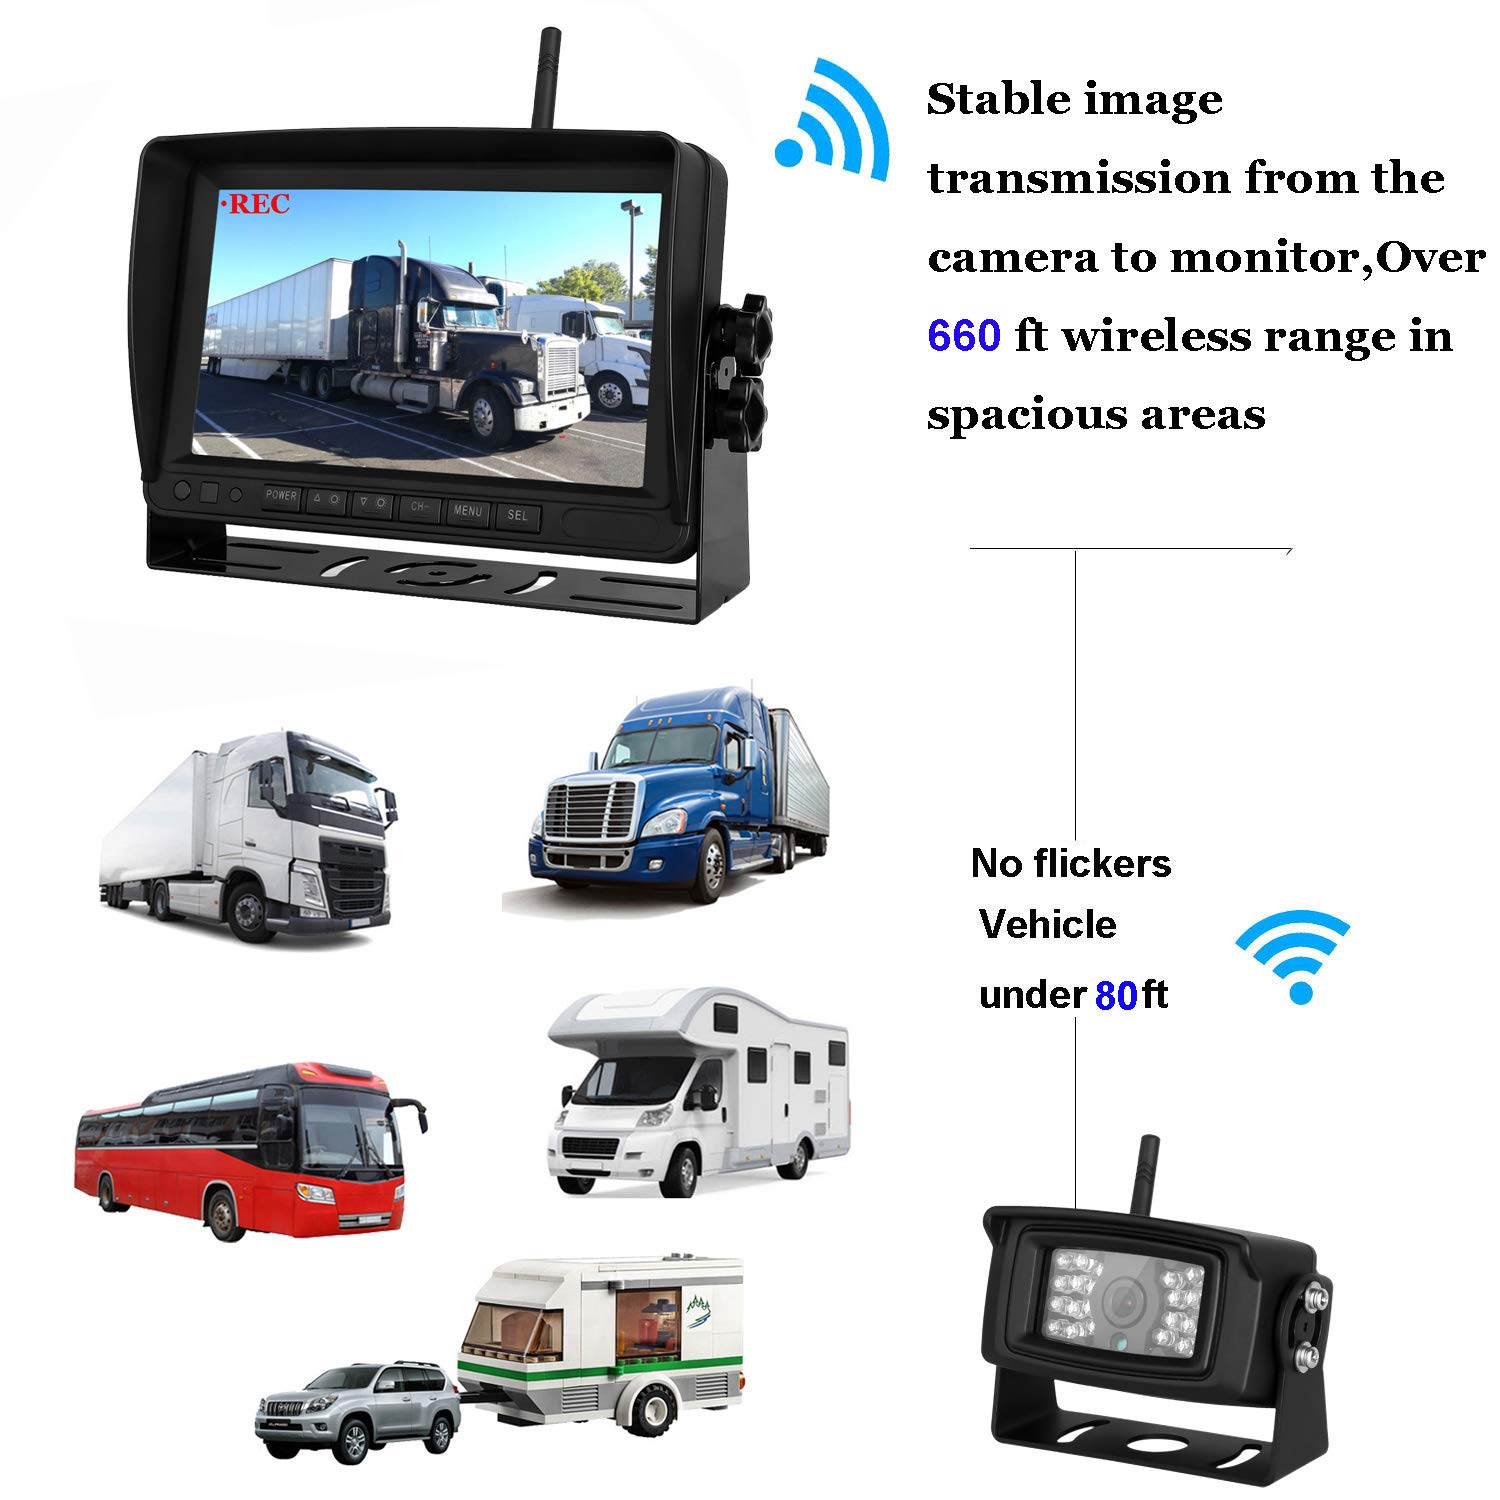 Upgraded Digital Wireless Backup Camera High-Speed Observation System for RV Truck Trailers Camper 5th Wheel with 7 Monitor Split Screen Recorder Driving//Reverse Use IP69K Waterproof Night Vision DohonesBest